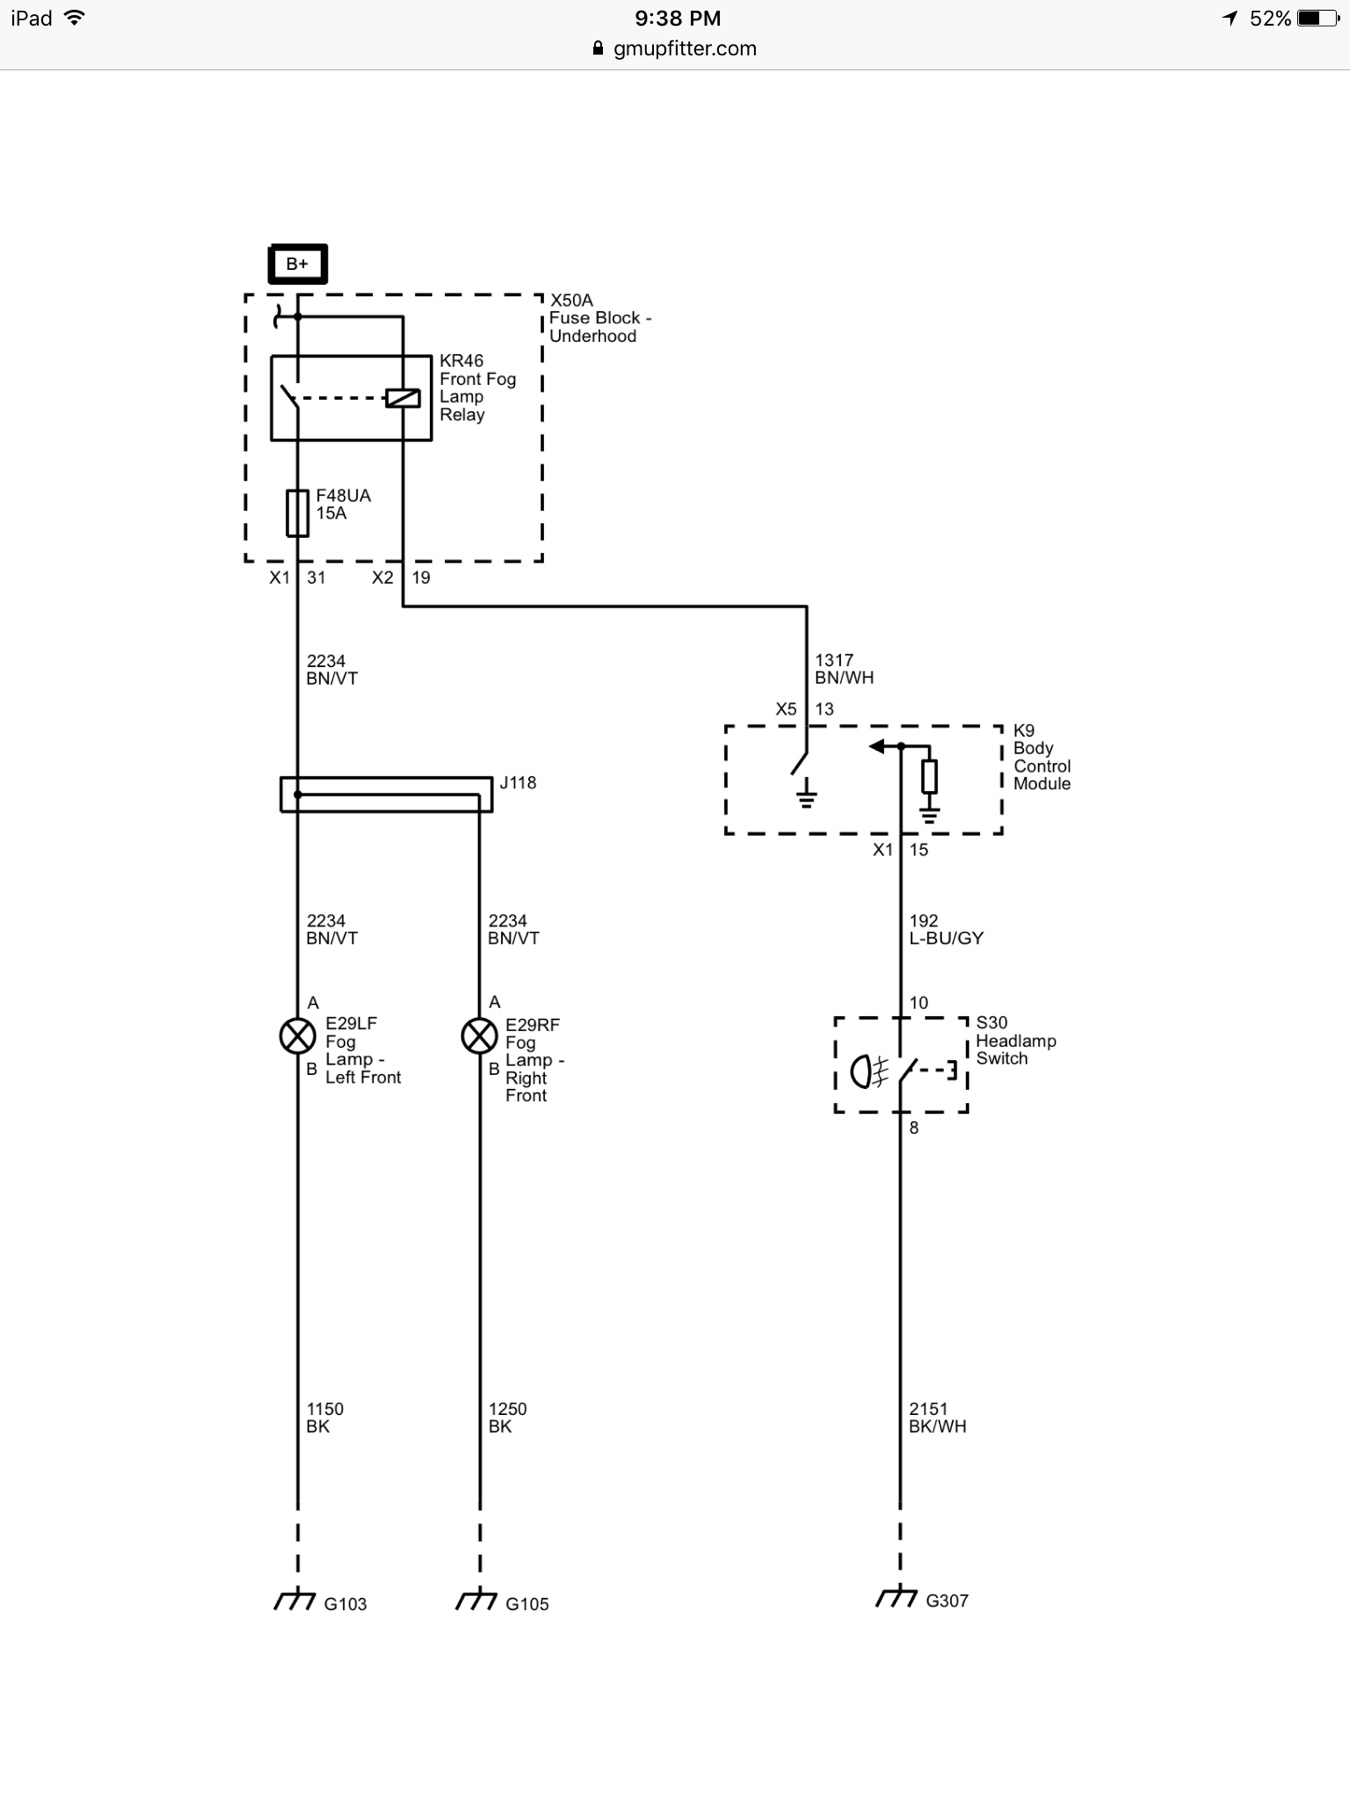 zr2 factory fog lamp relay and fuse chevy colorado \u0026 gmc canyon Fuse Box Diagram 2005 Colorado just wondering if the fog lamp circuit is included, i don\u0027t see the relay kr46, but the fuse f48 is installed in my fuse box